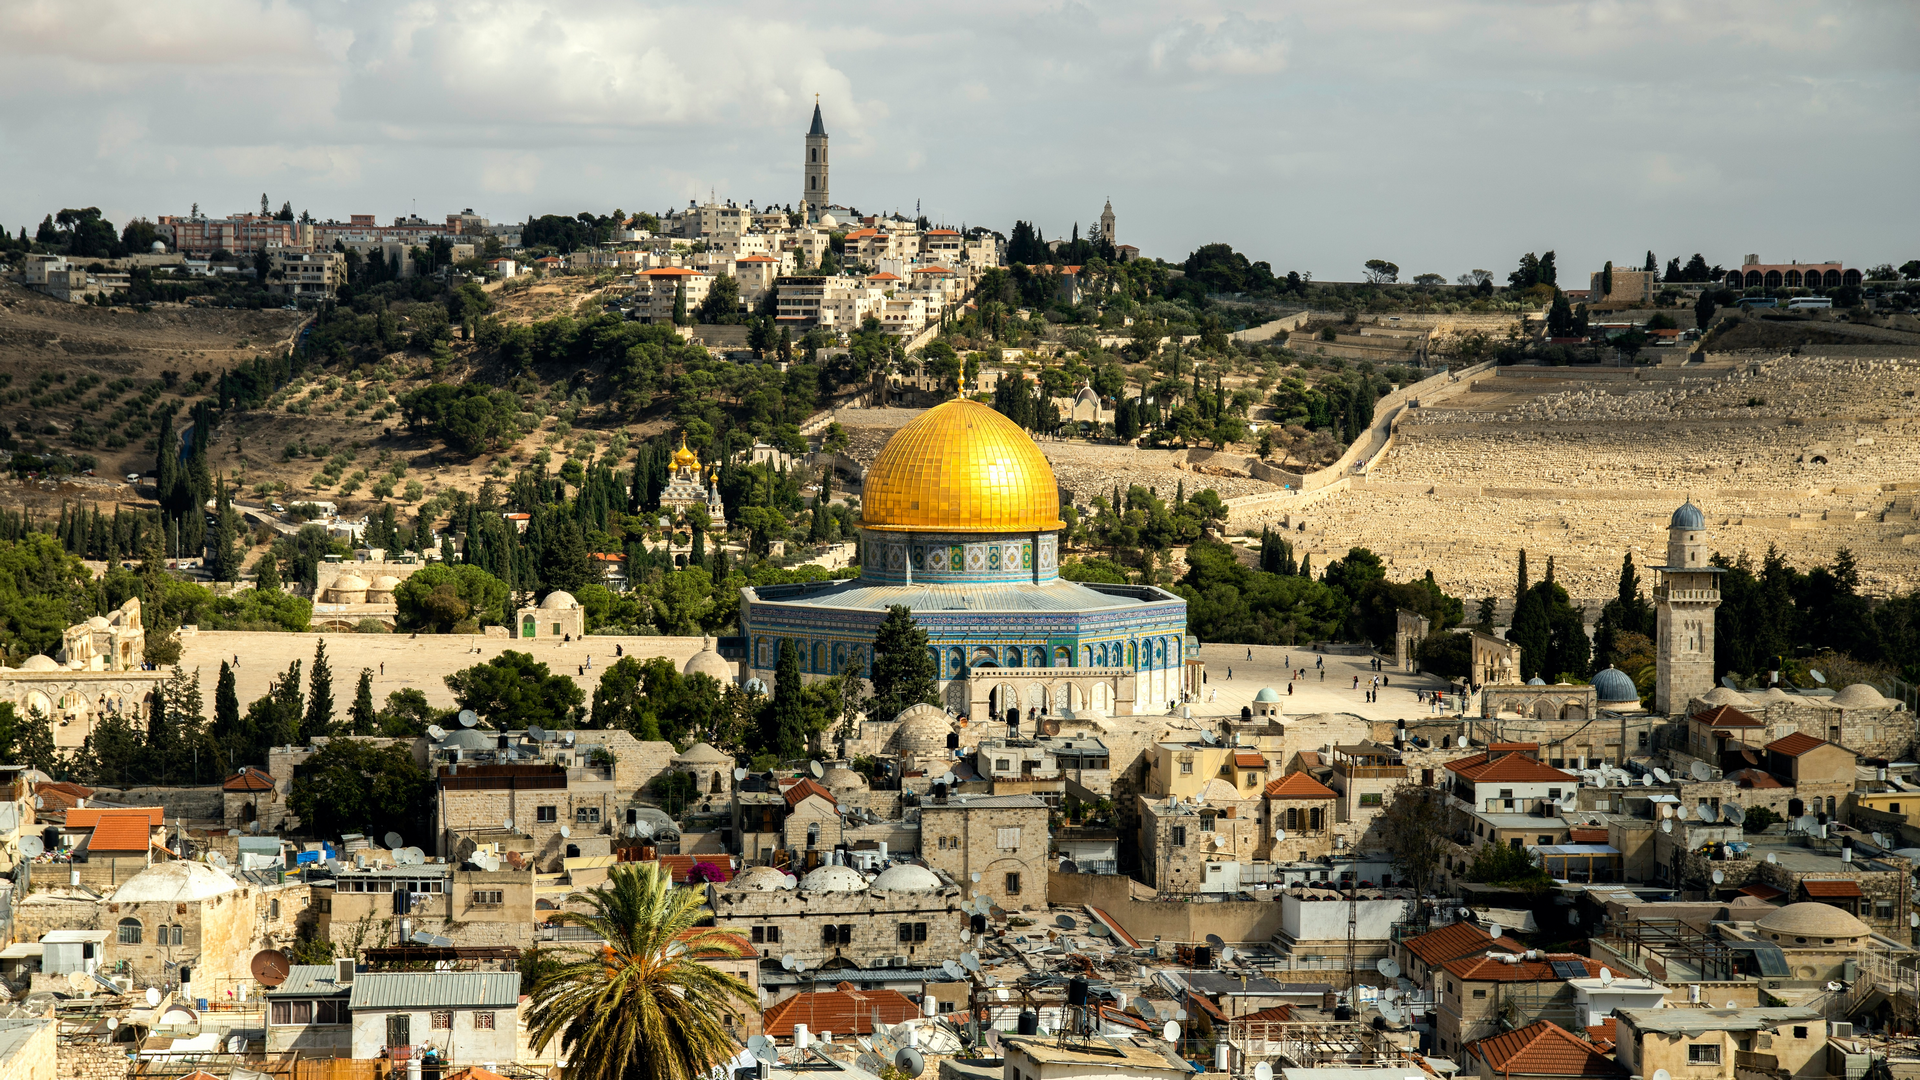 A view in Israel